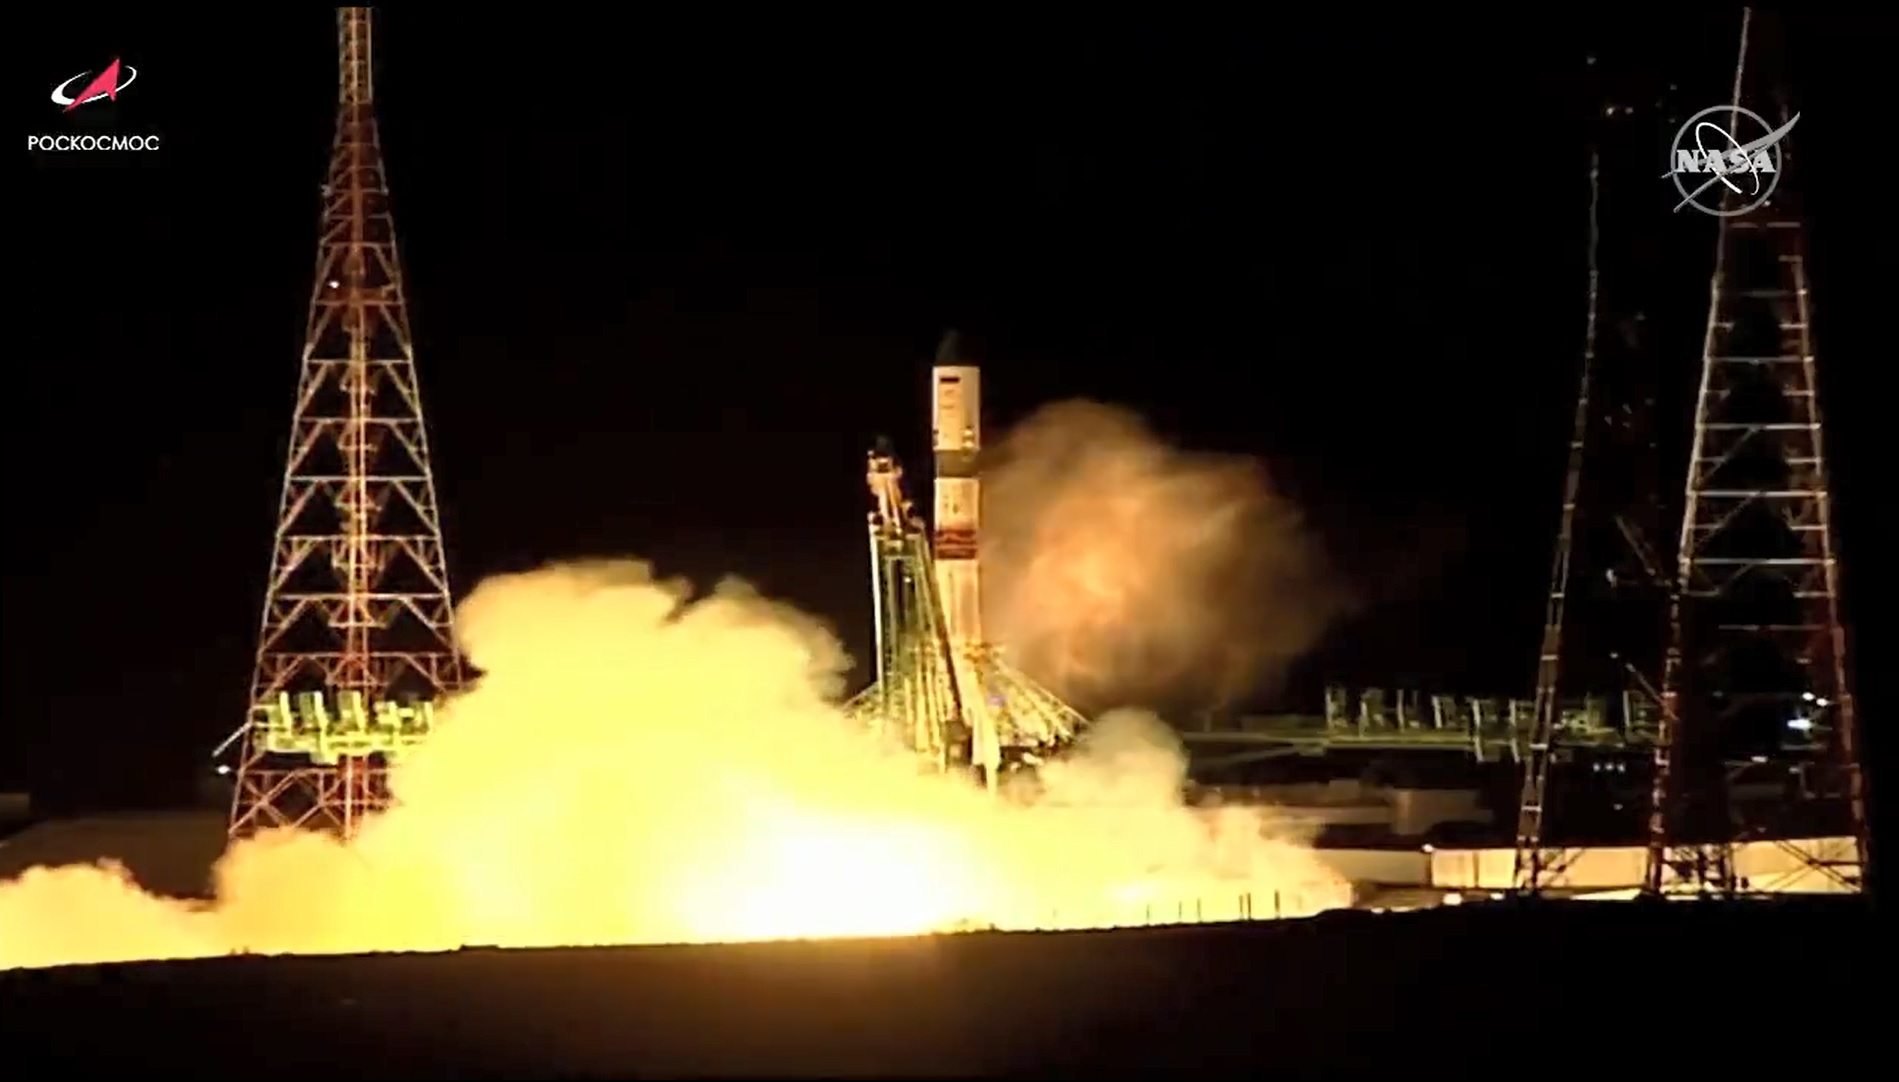 Russia's ISS Progress 79 resupply ship blasts off from the Baikonur Cosmodrome in Kazakhstan to the space station. Credit: NASA TV